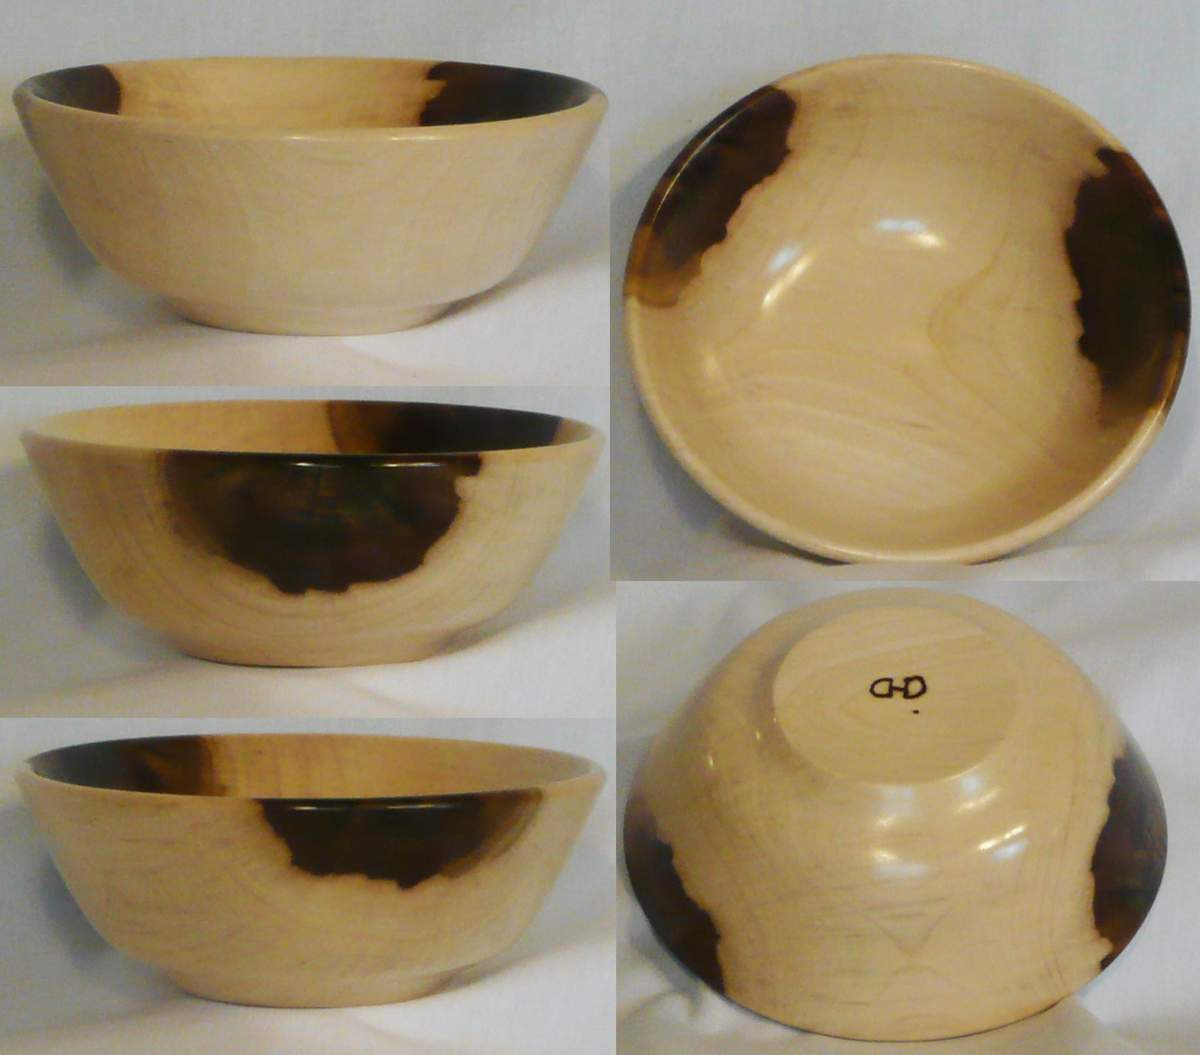 Hand turned wooden bowl of Tulip Poplar wood by Cynthia D. Haney